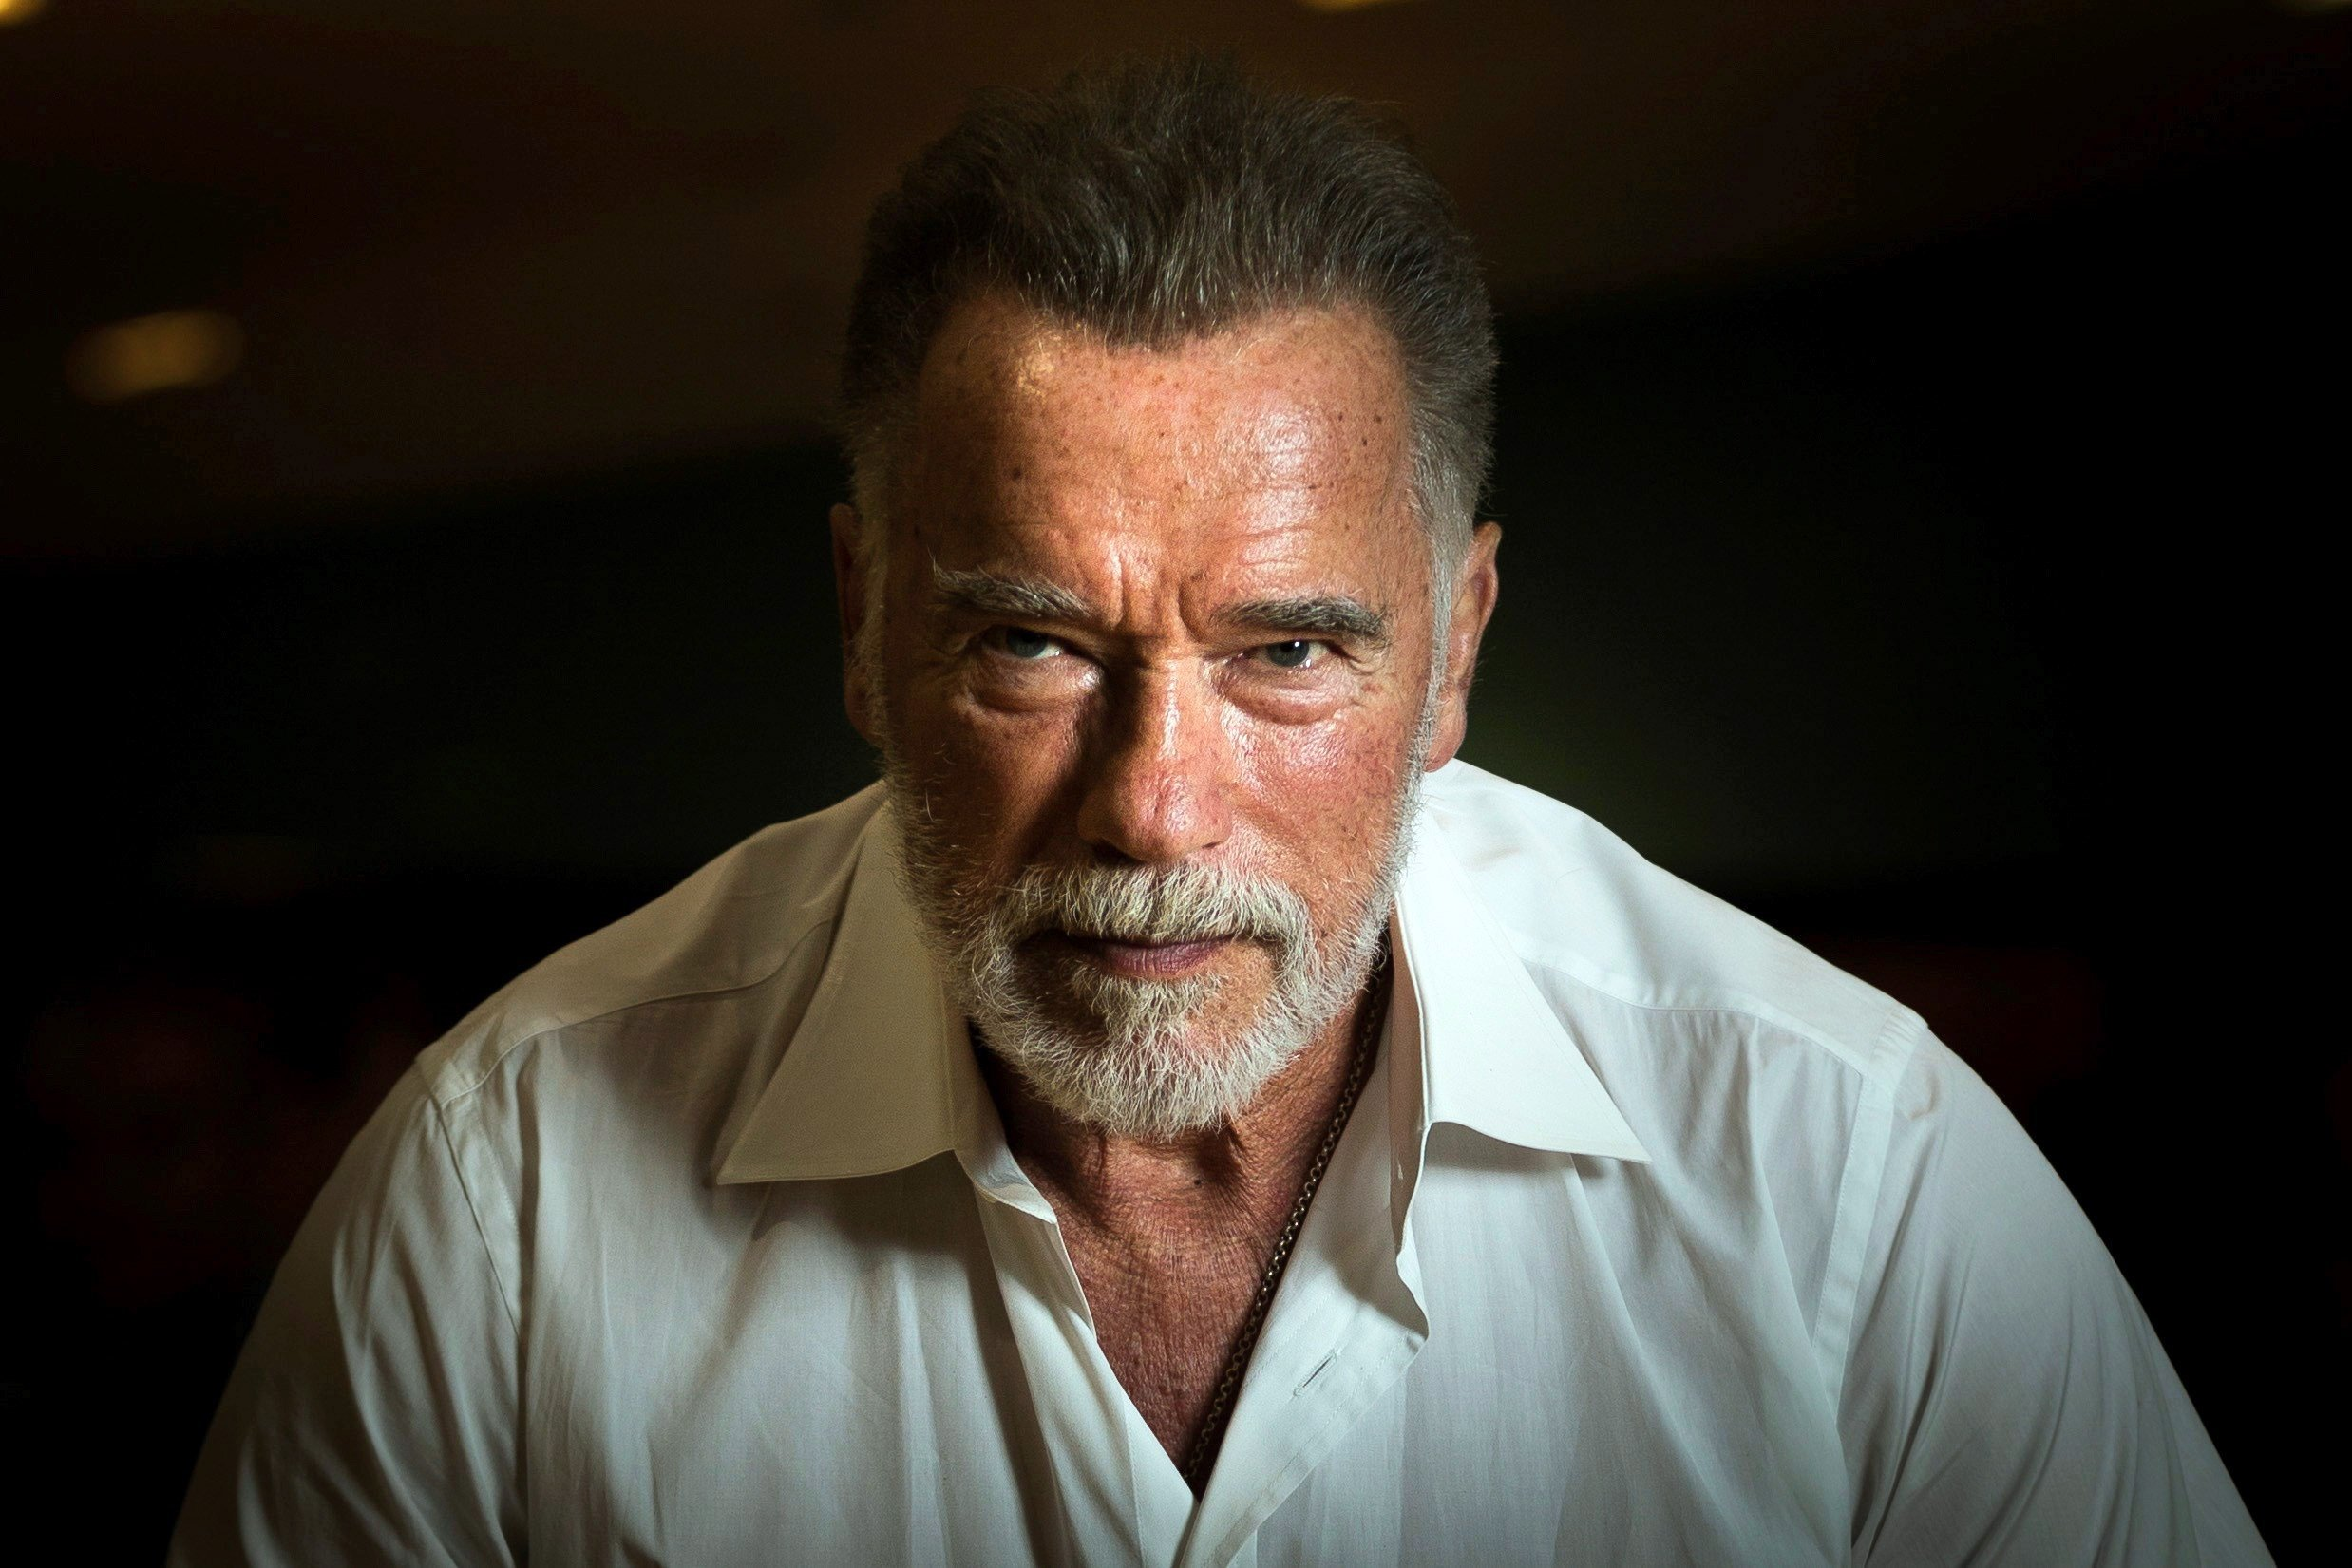 Schwarzenegger Campaigns for Hungarian Gyms to Reopen with Precautions